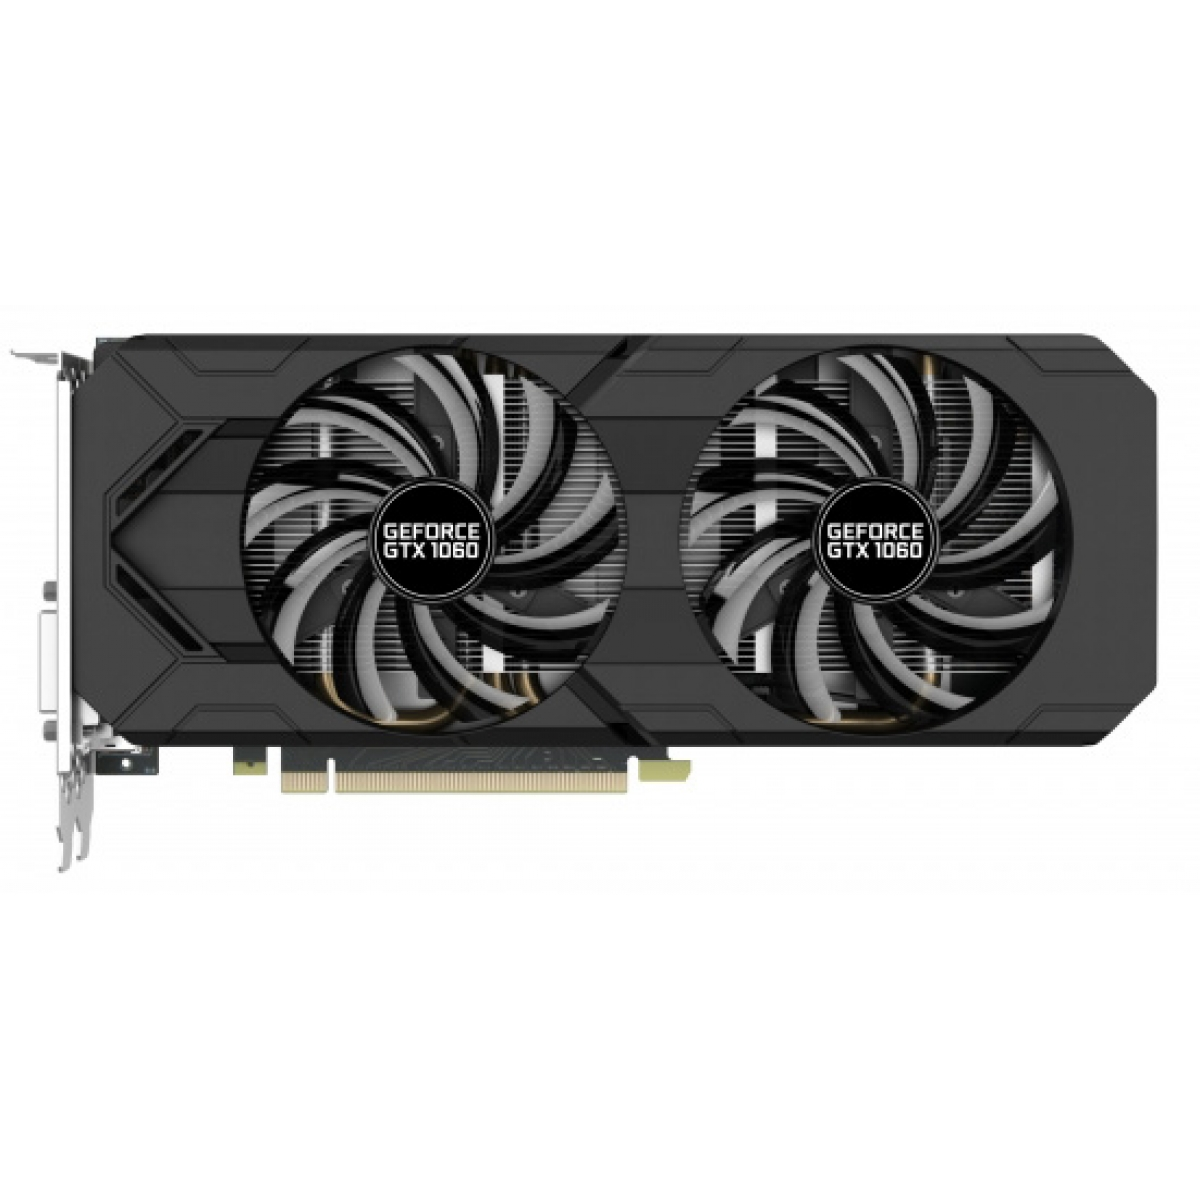 Placa De Vídeo Gainward Geforce GTX 1060 Dual, 6GB GDDR5, 192Bit